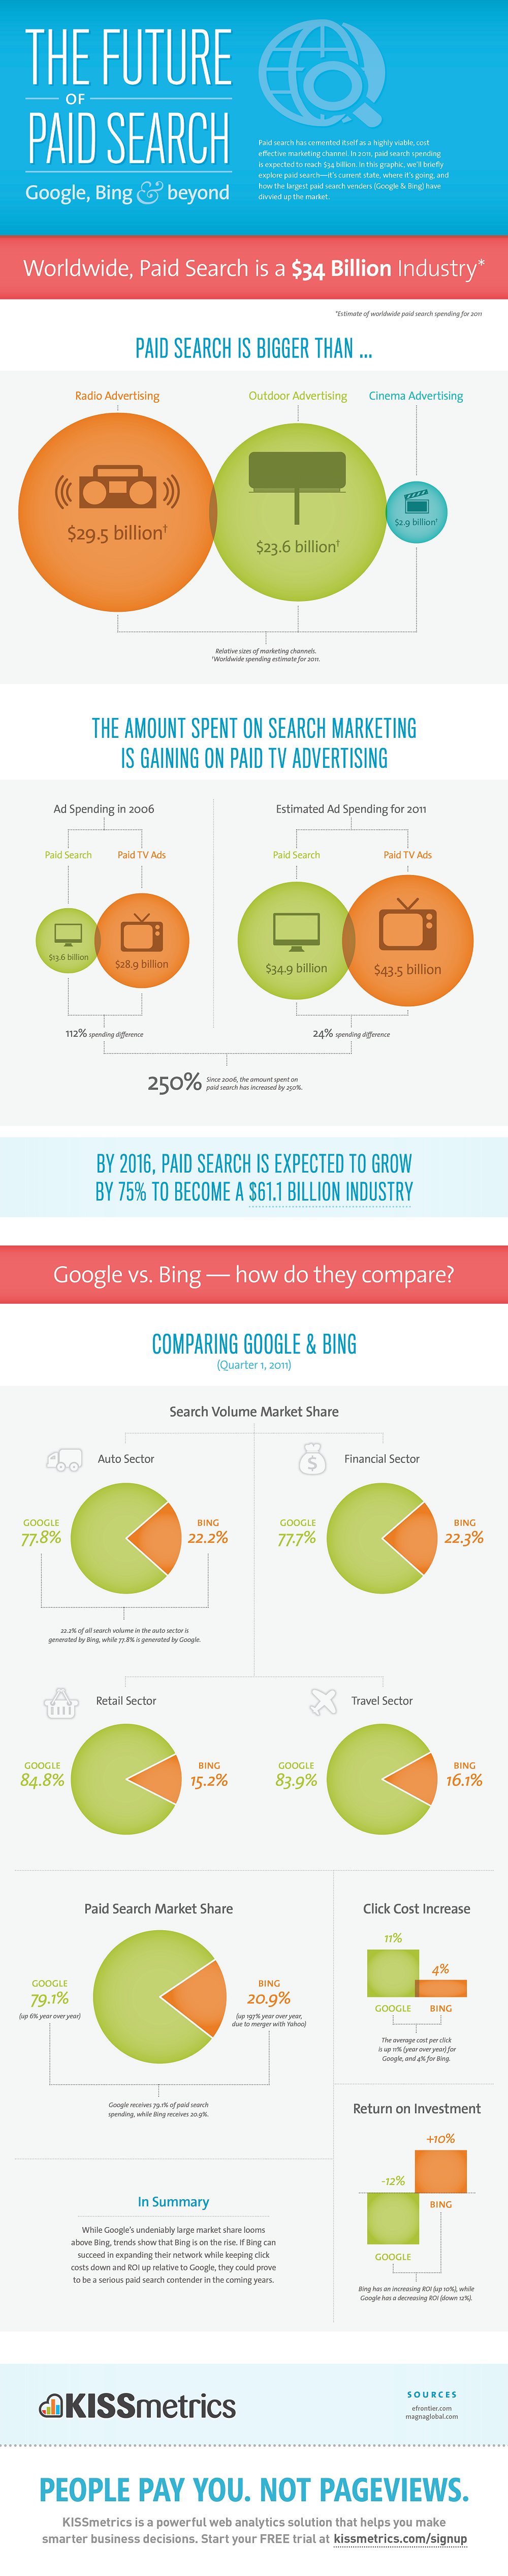 Facts about Paid Search